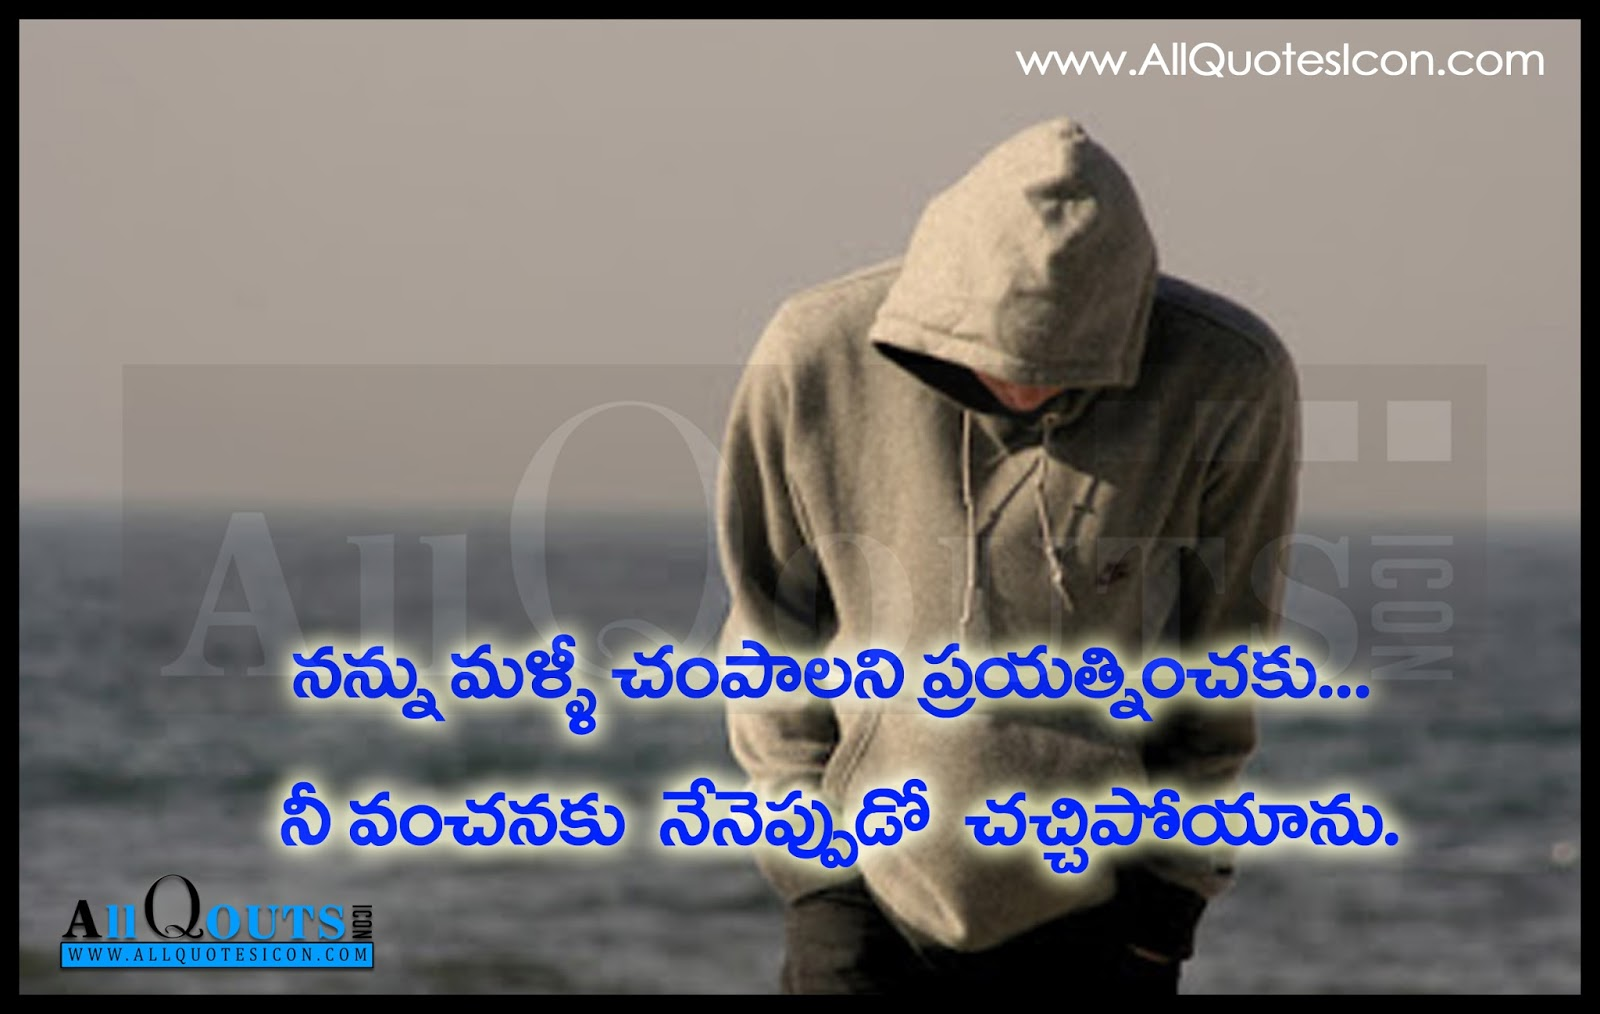 Telugu Love Quotes Telugu Love Quotes And Images  Www.allquotesicon  Telugu